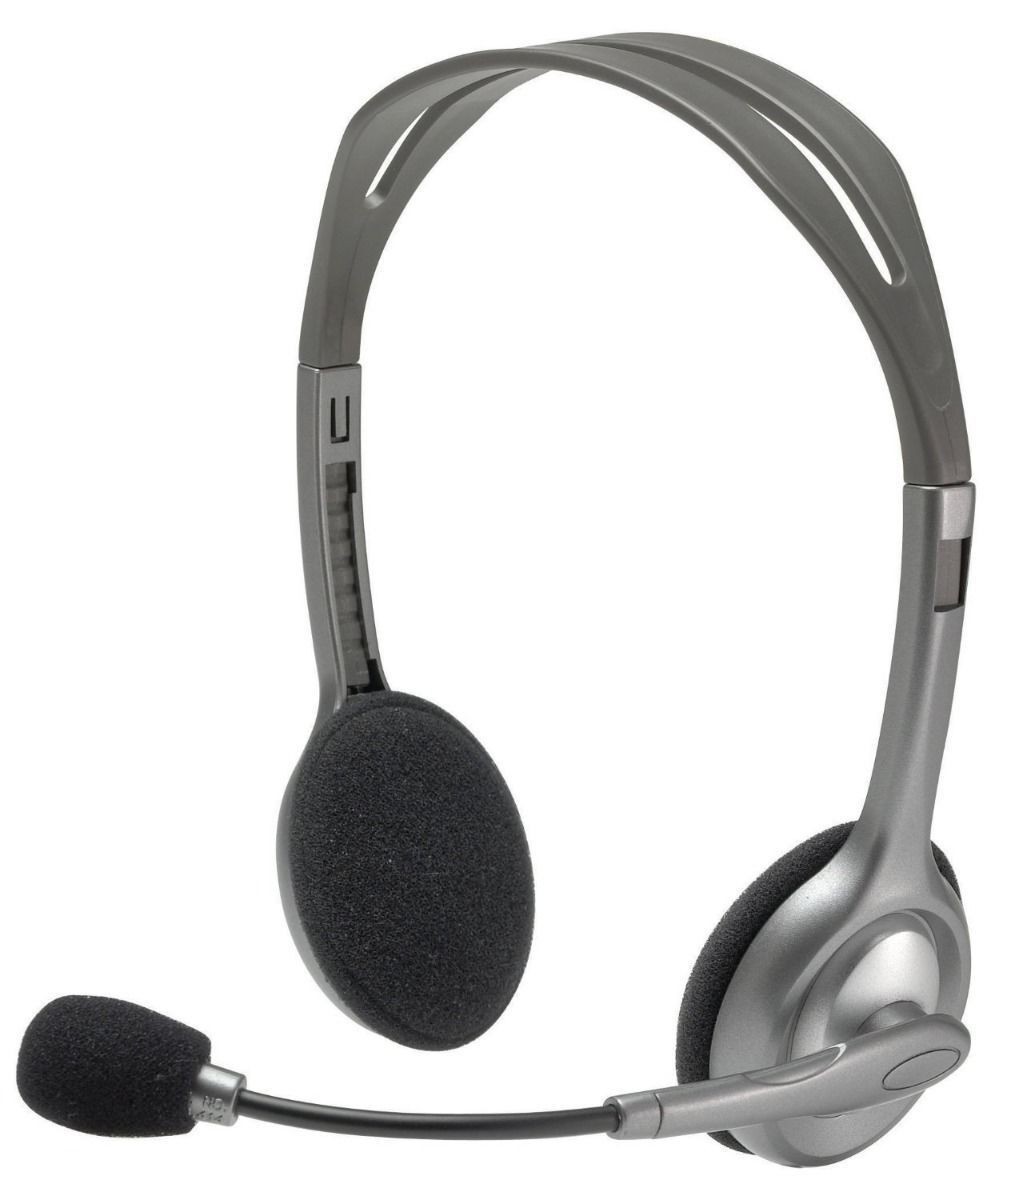 Logitech H111 3.5 mm Noise Cancelling Wired Headset With Mic